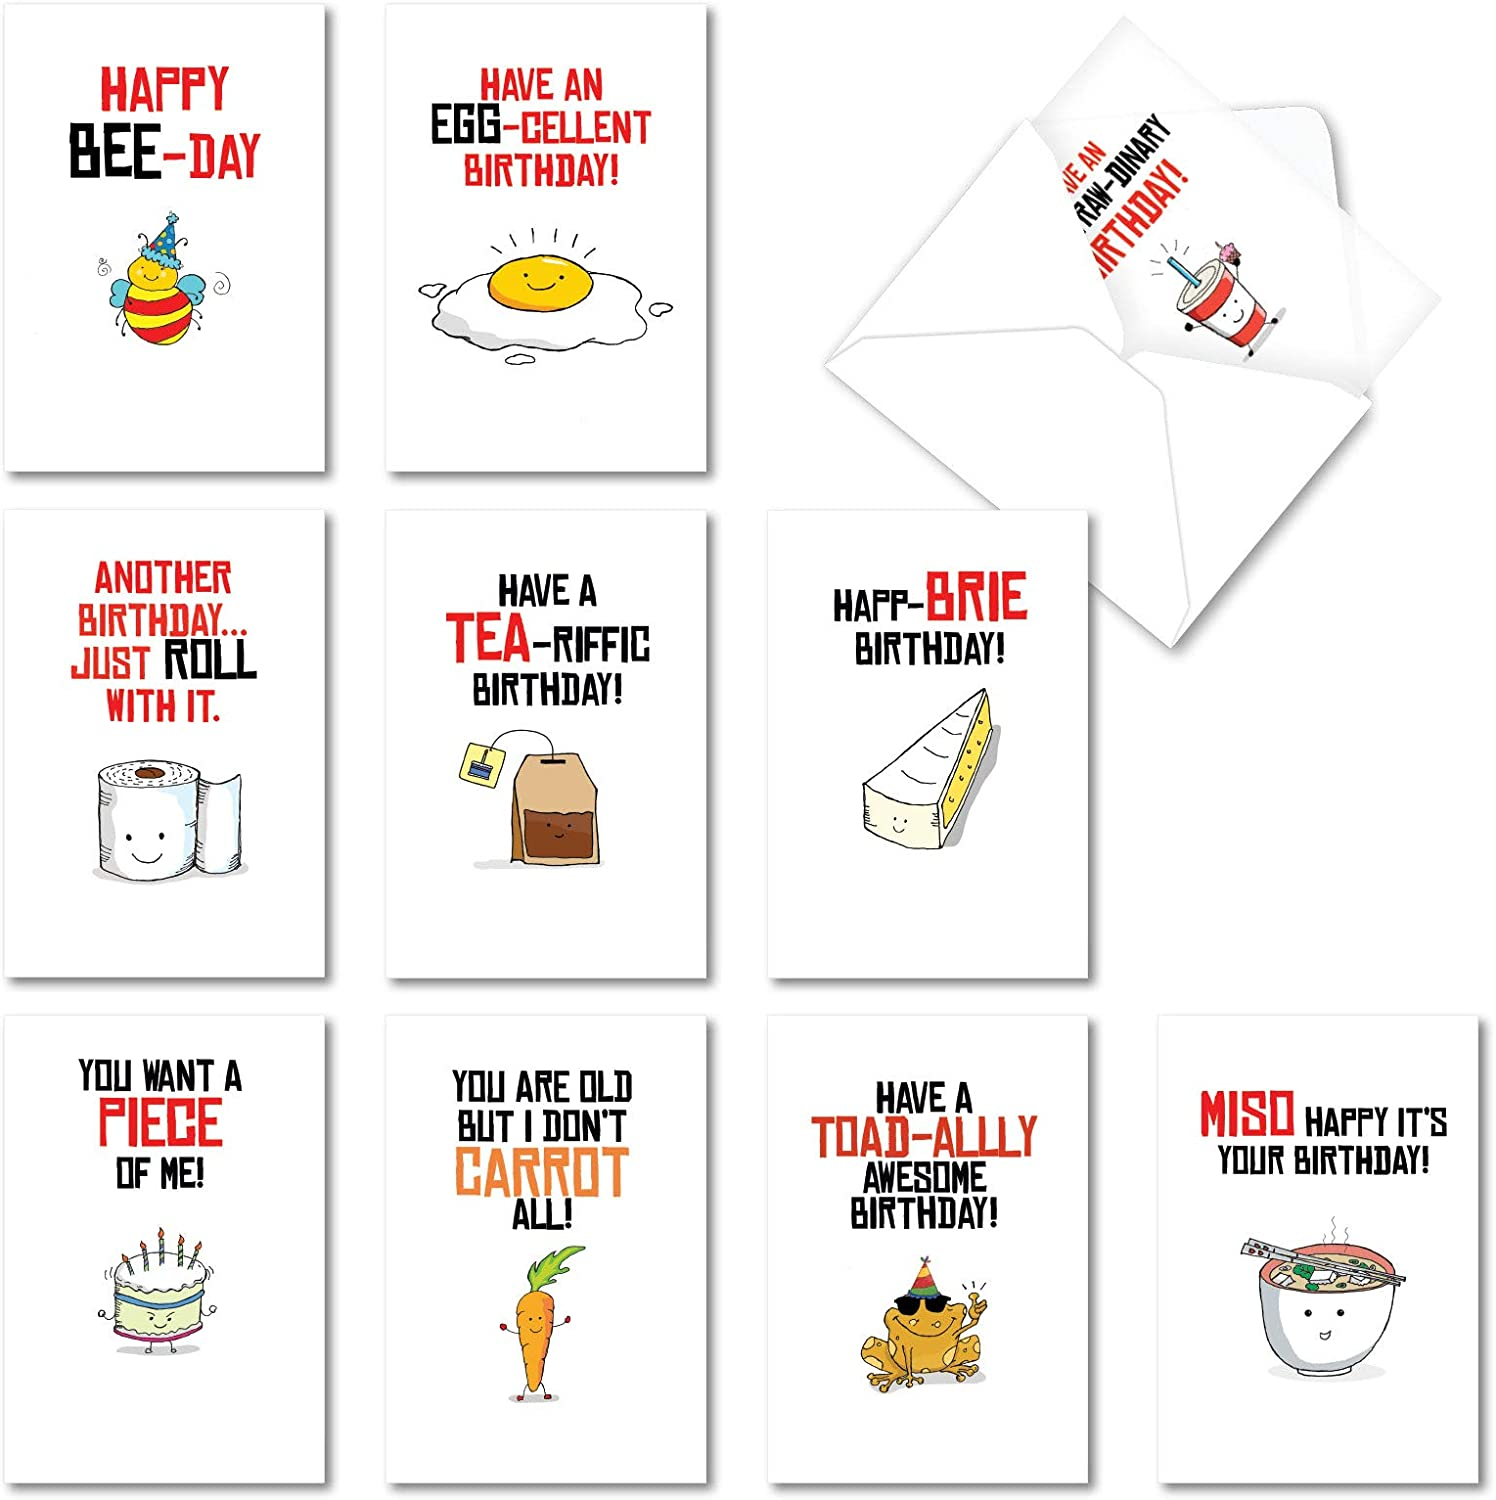 NobleWorks - 10 Assorted Happy Birthday Cards - Funny Bday Greeting Cards with Cartoons, Bulk Boxed Notecard Set - Birthday Puns AC6119BDG-B1x10